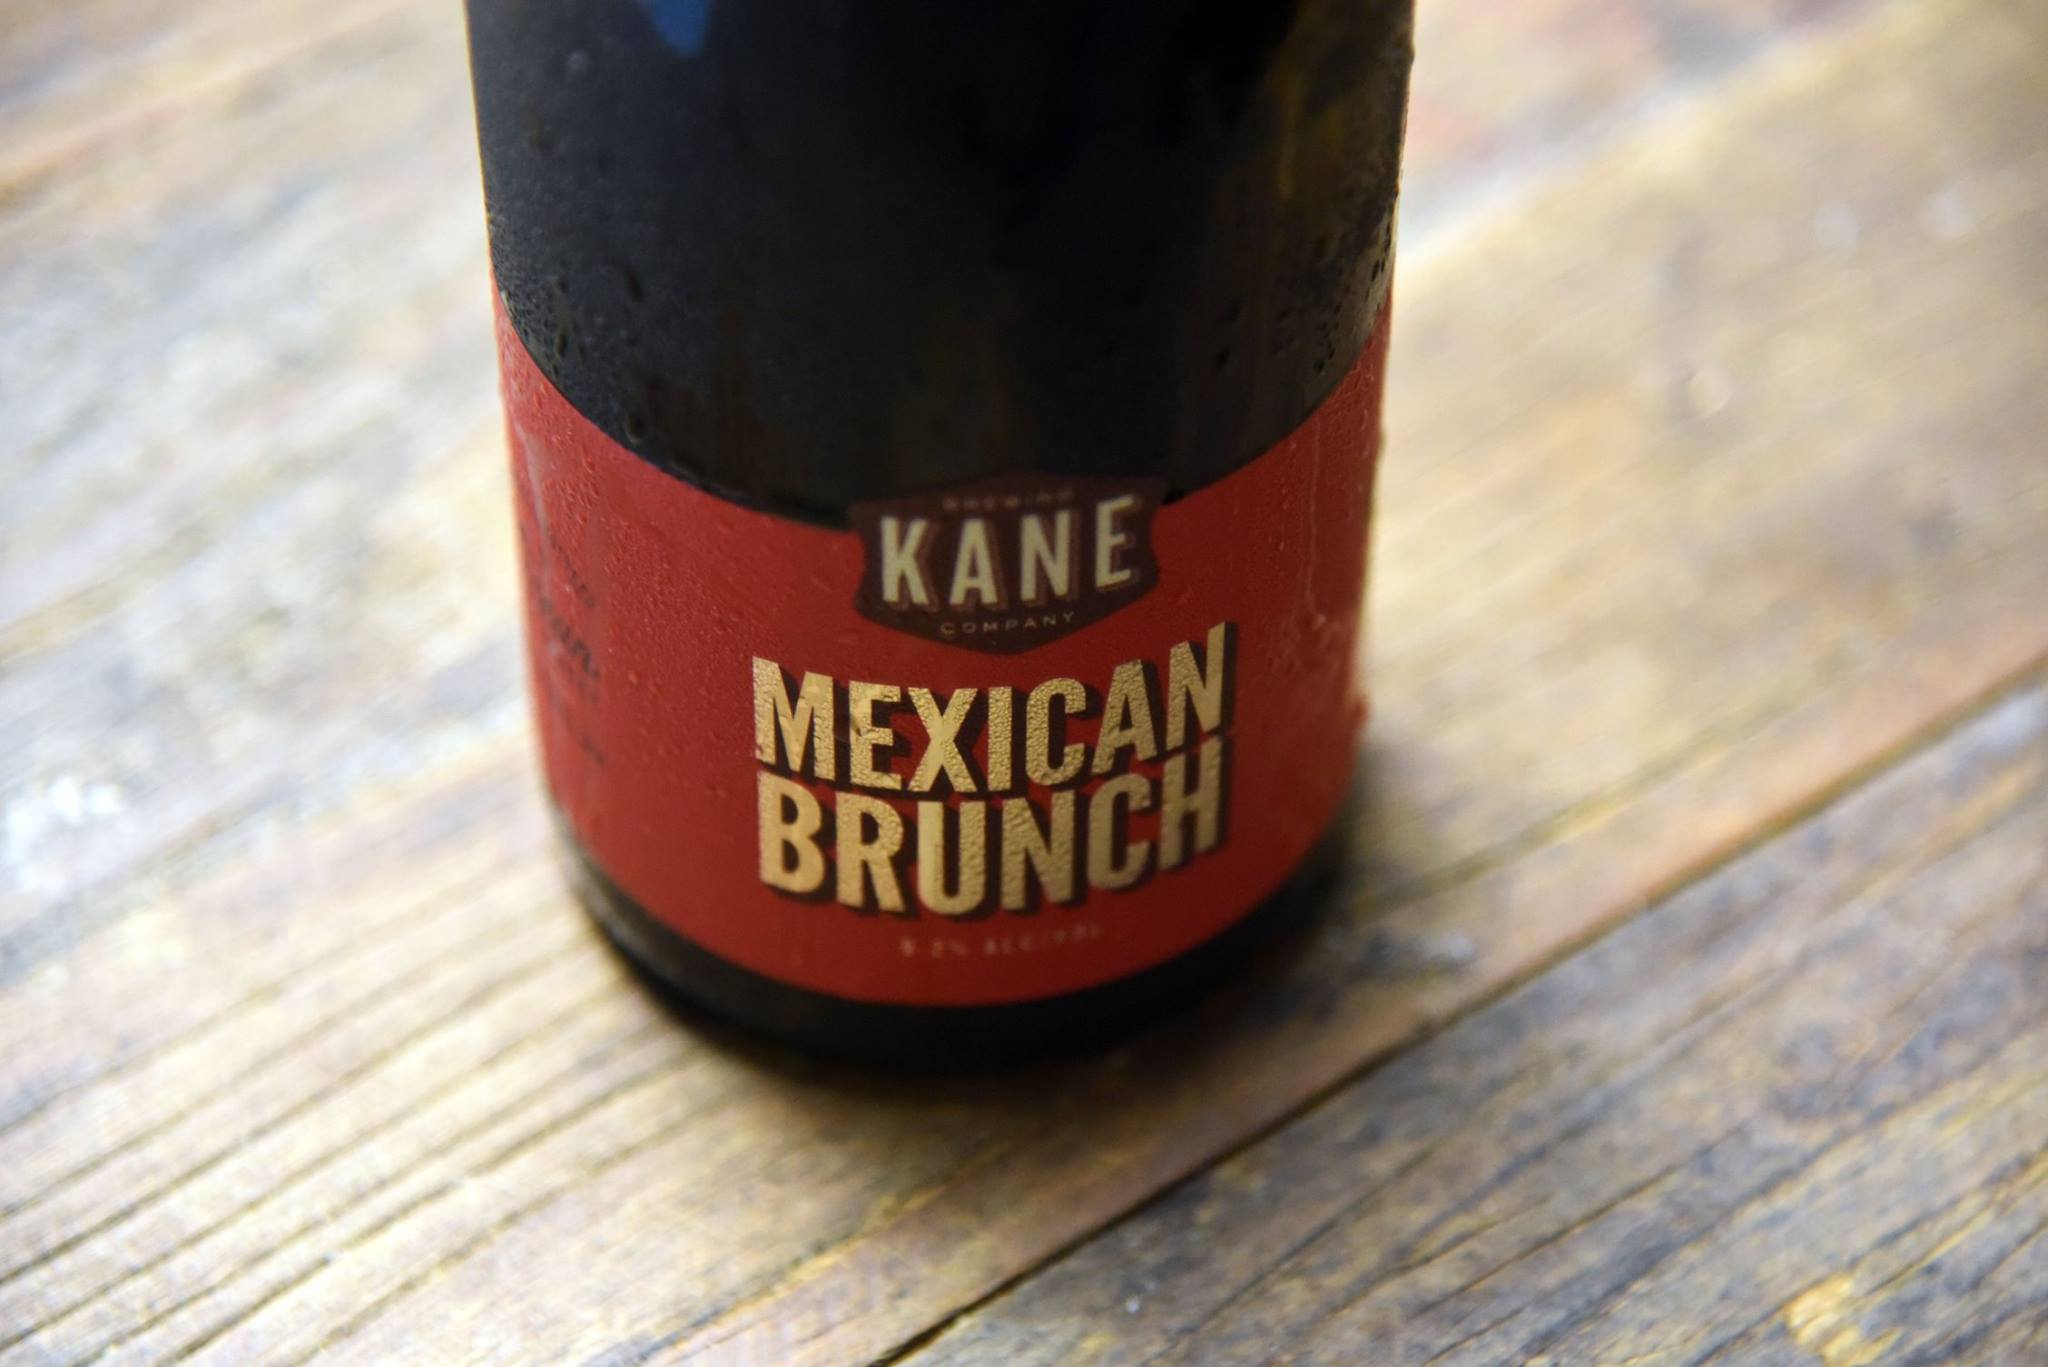 kane mexican brunch 2017 online sale details 9 14